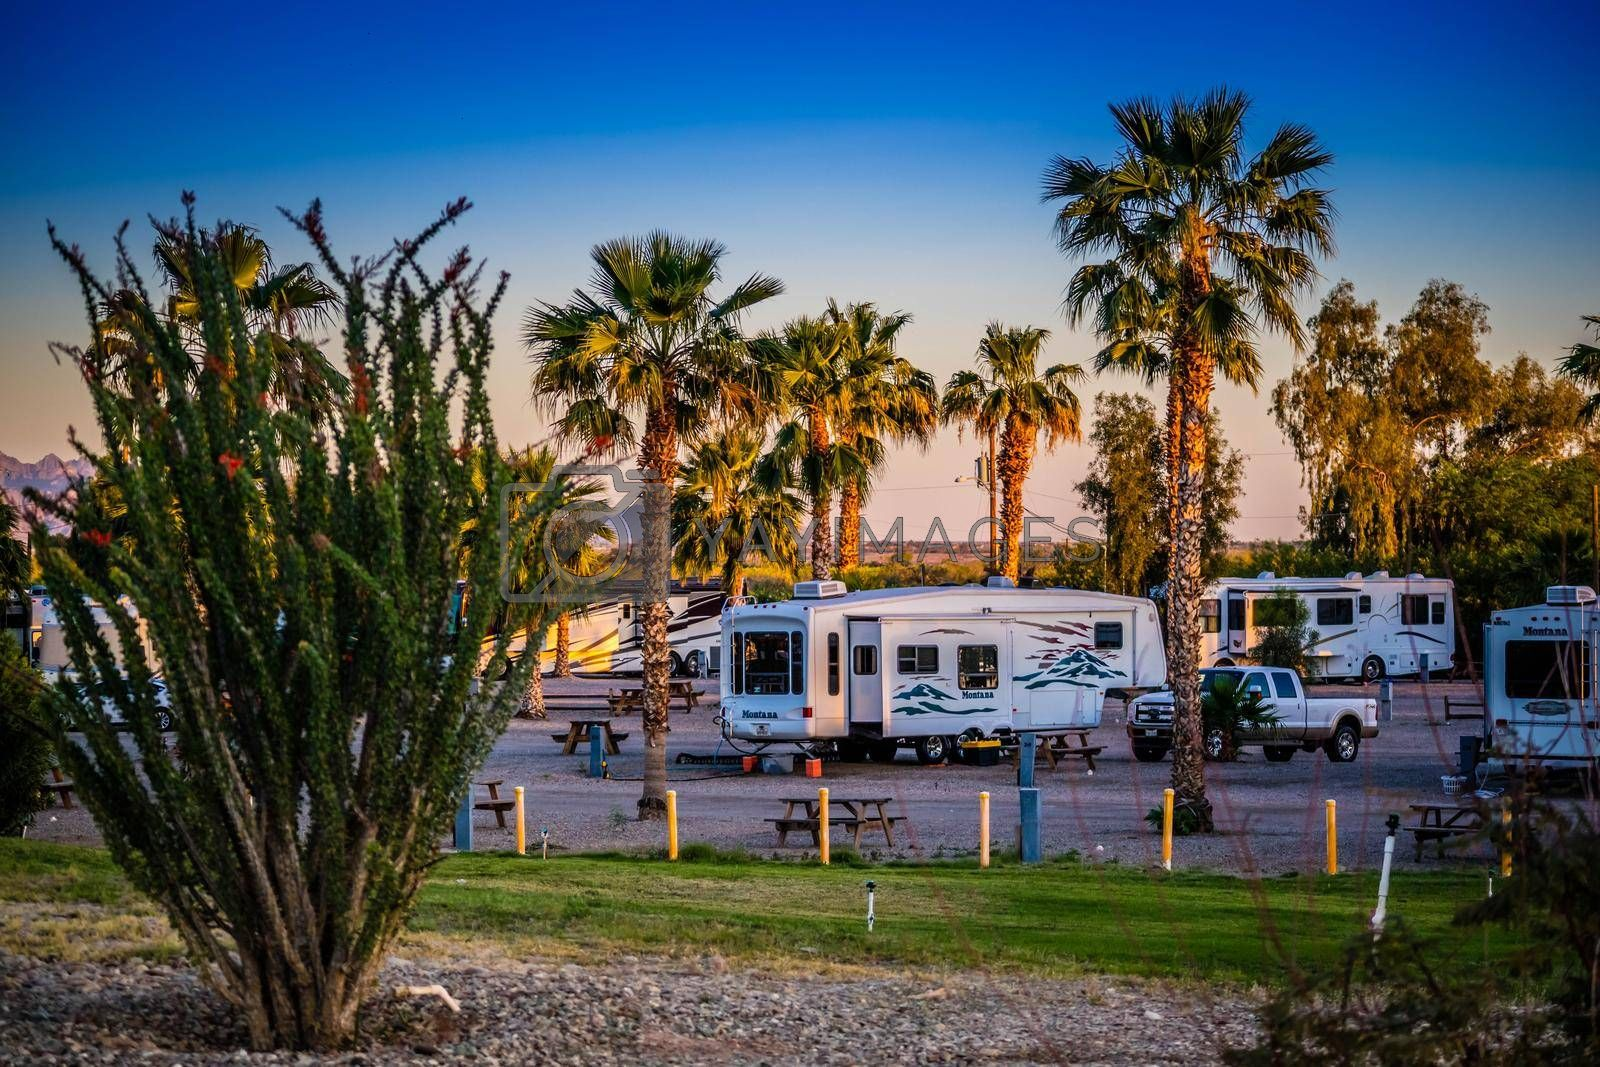 Royalty free image of Yuma, AZ, USA - April 4, 2017: Enjoying the captivated view from our RV by cherialguire